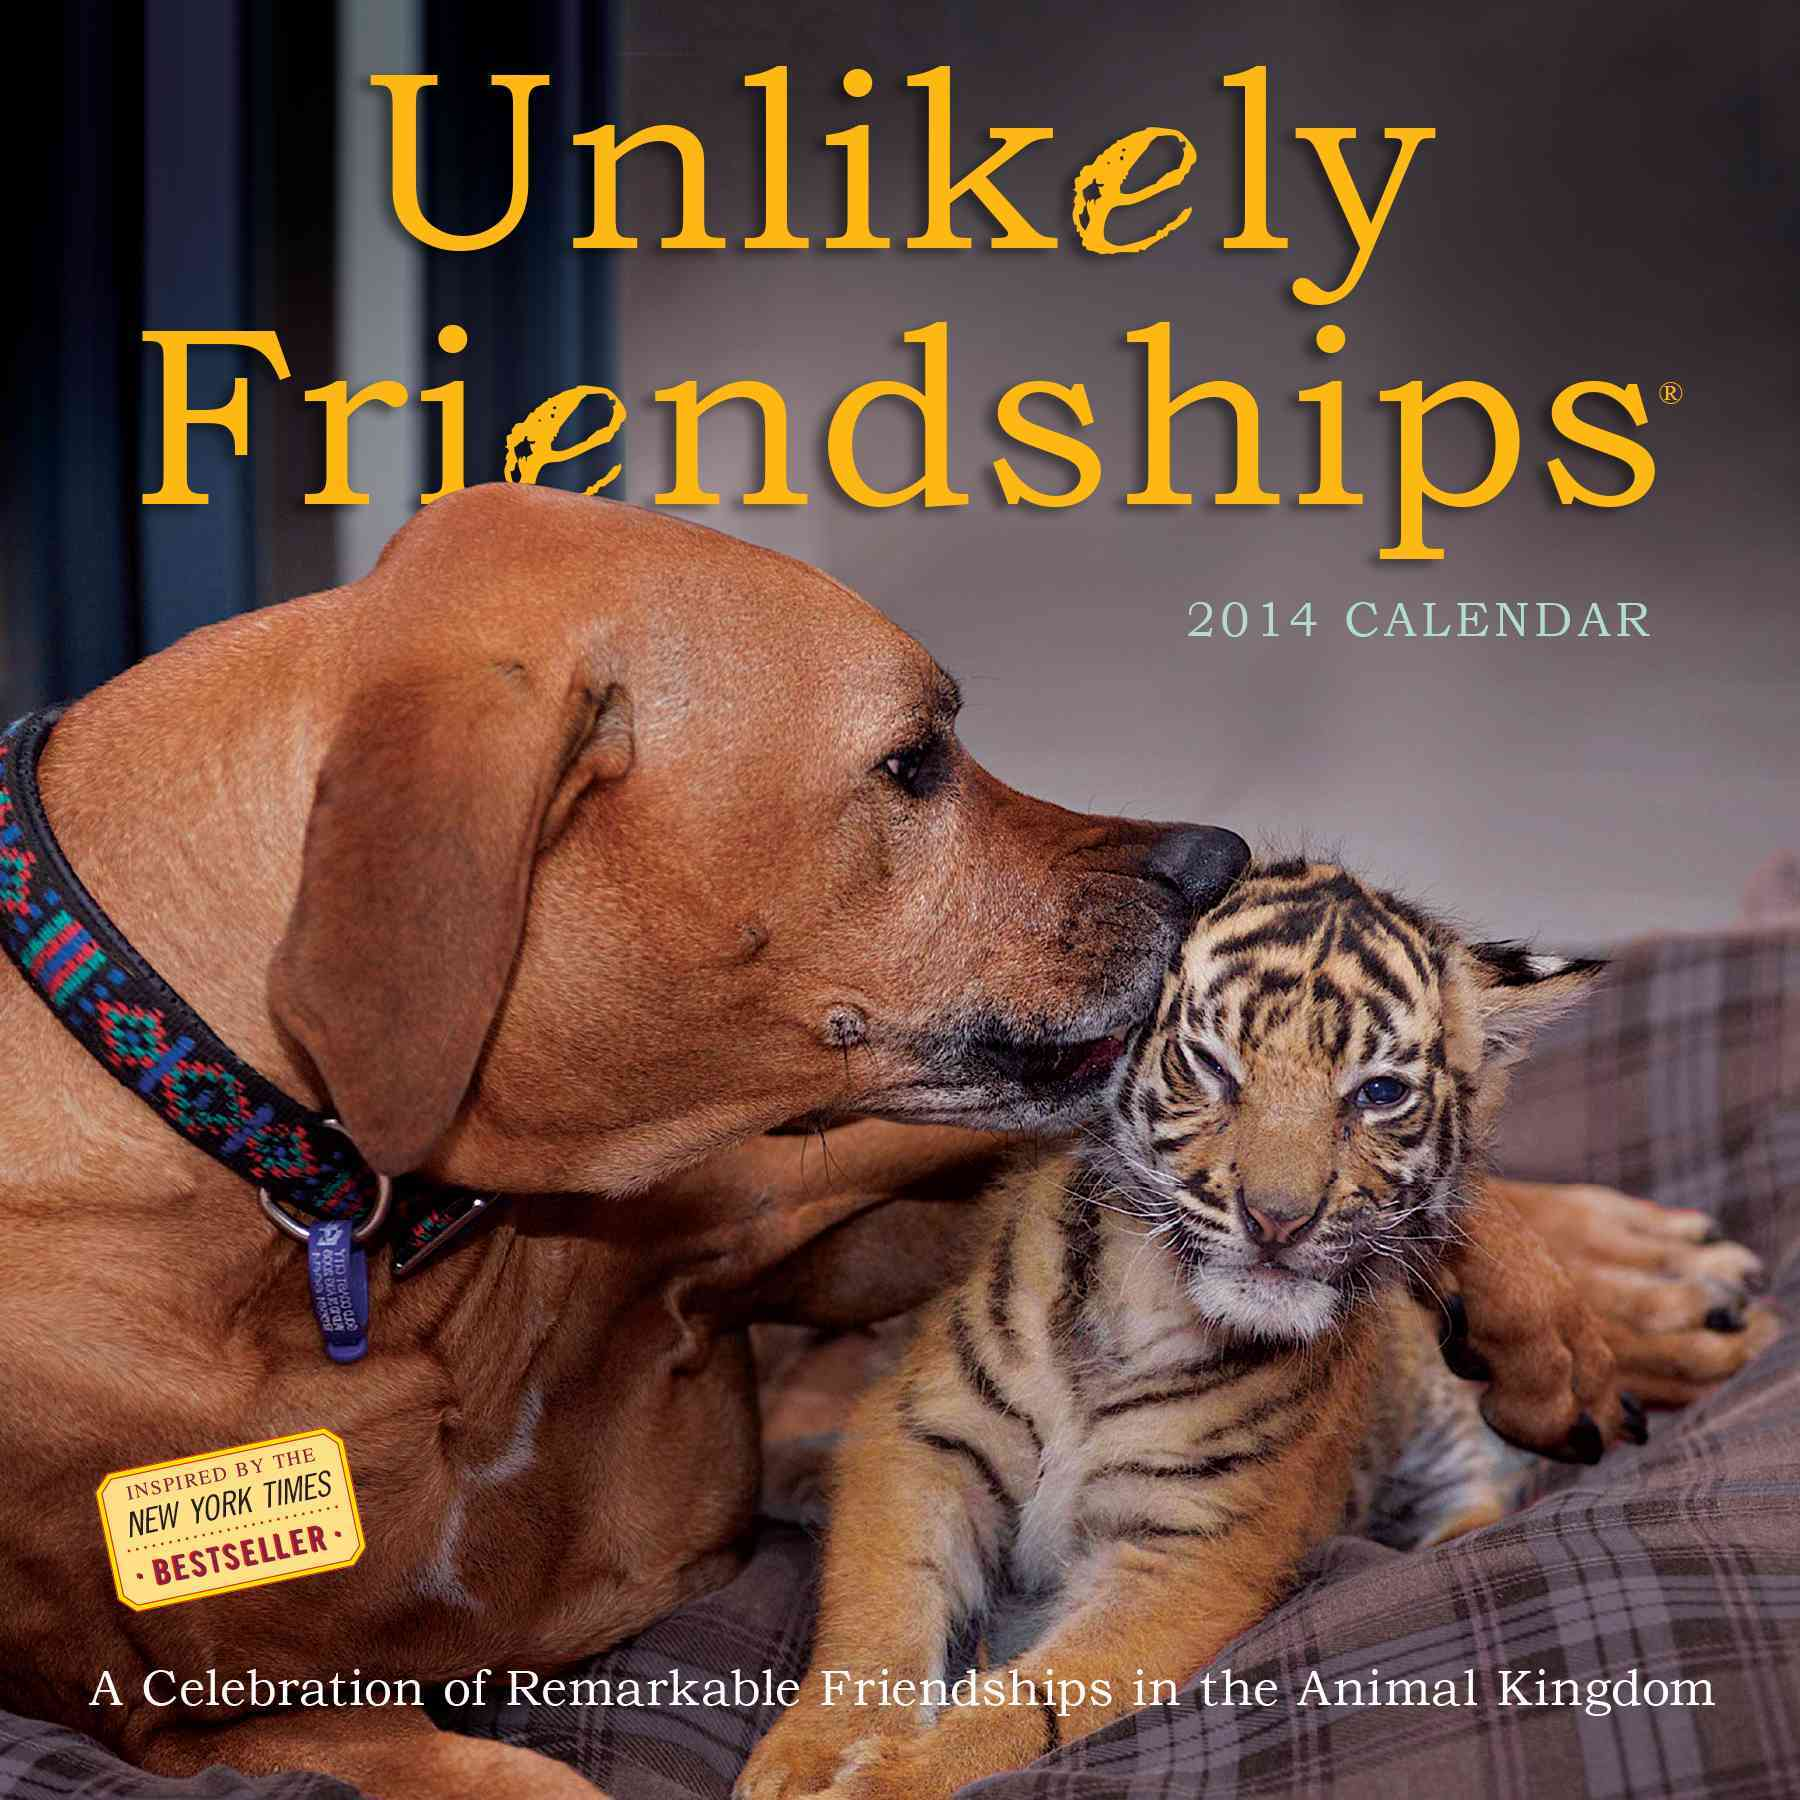 Unlikely Friendships 2014 Calendar: A Celebration of Remarkable Friendships in the Animal Kingdom (Calendar)